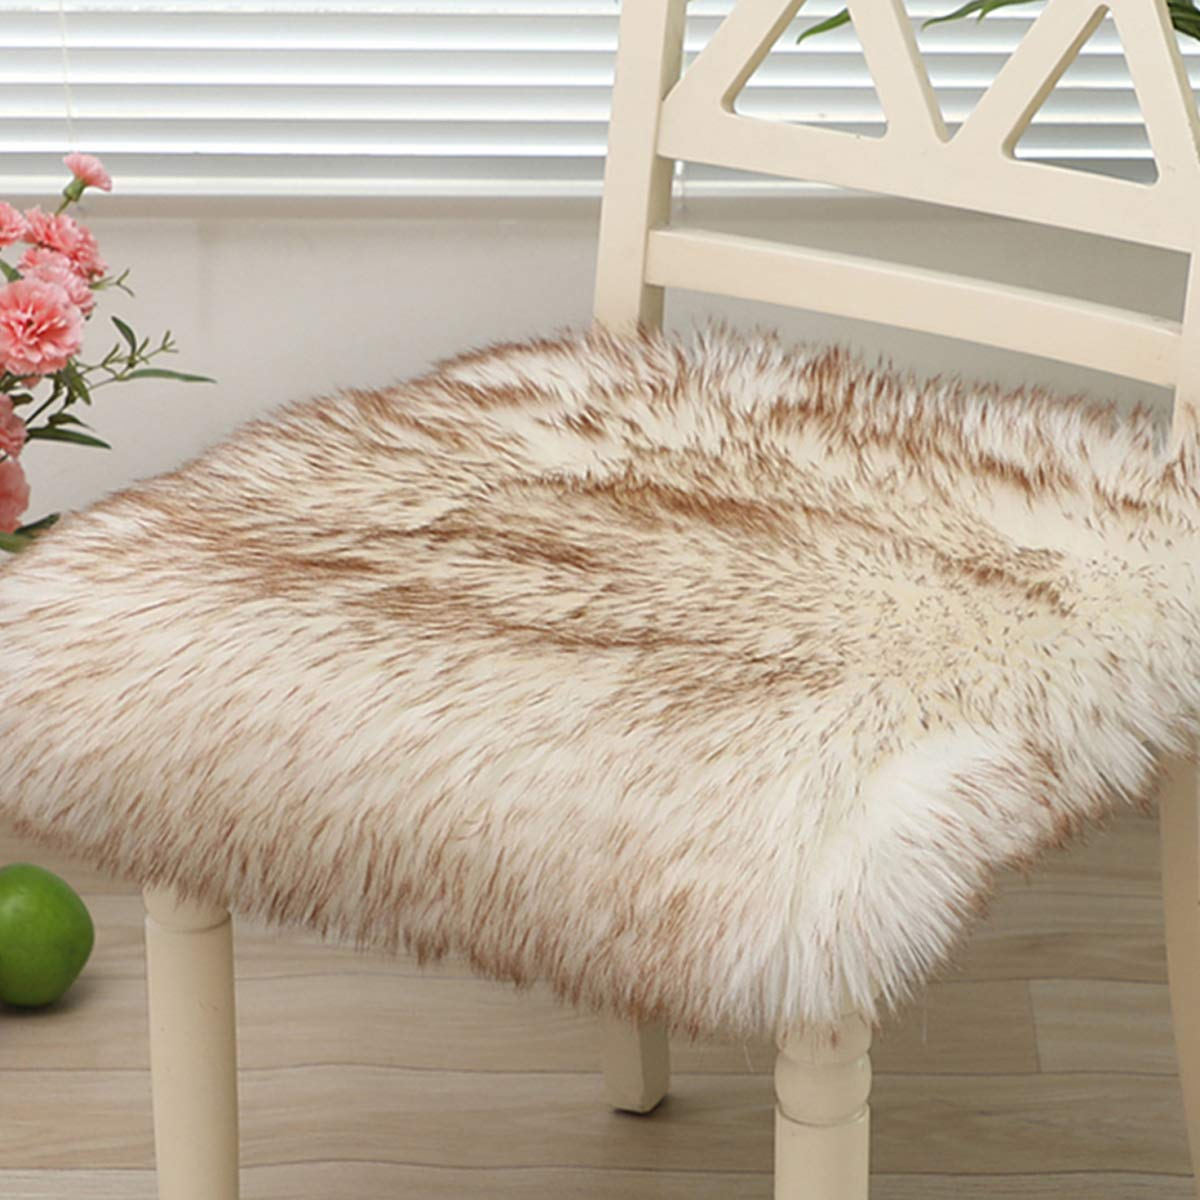 TEALP Faux Fur Sheepskin Silky Seat Cushion, Home Decor Square Area Rugs Carpet, Soft Fluffy Plush Chair Seat Pads Universal Fit Home Office Restaurant Chair, White Coffee,1 PC